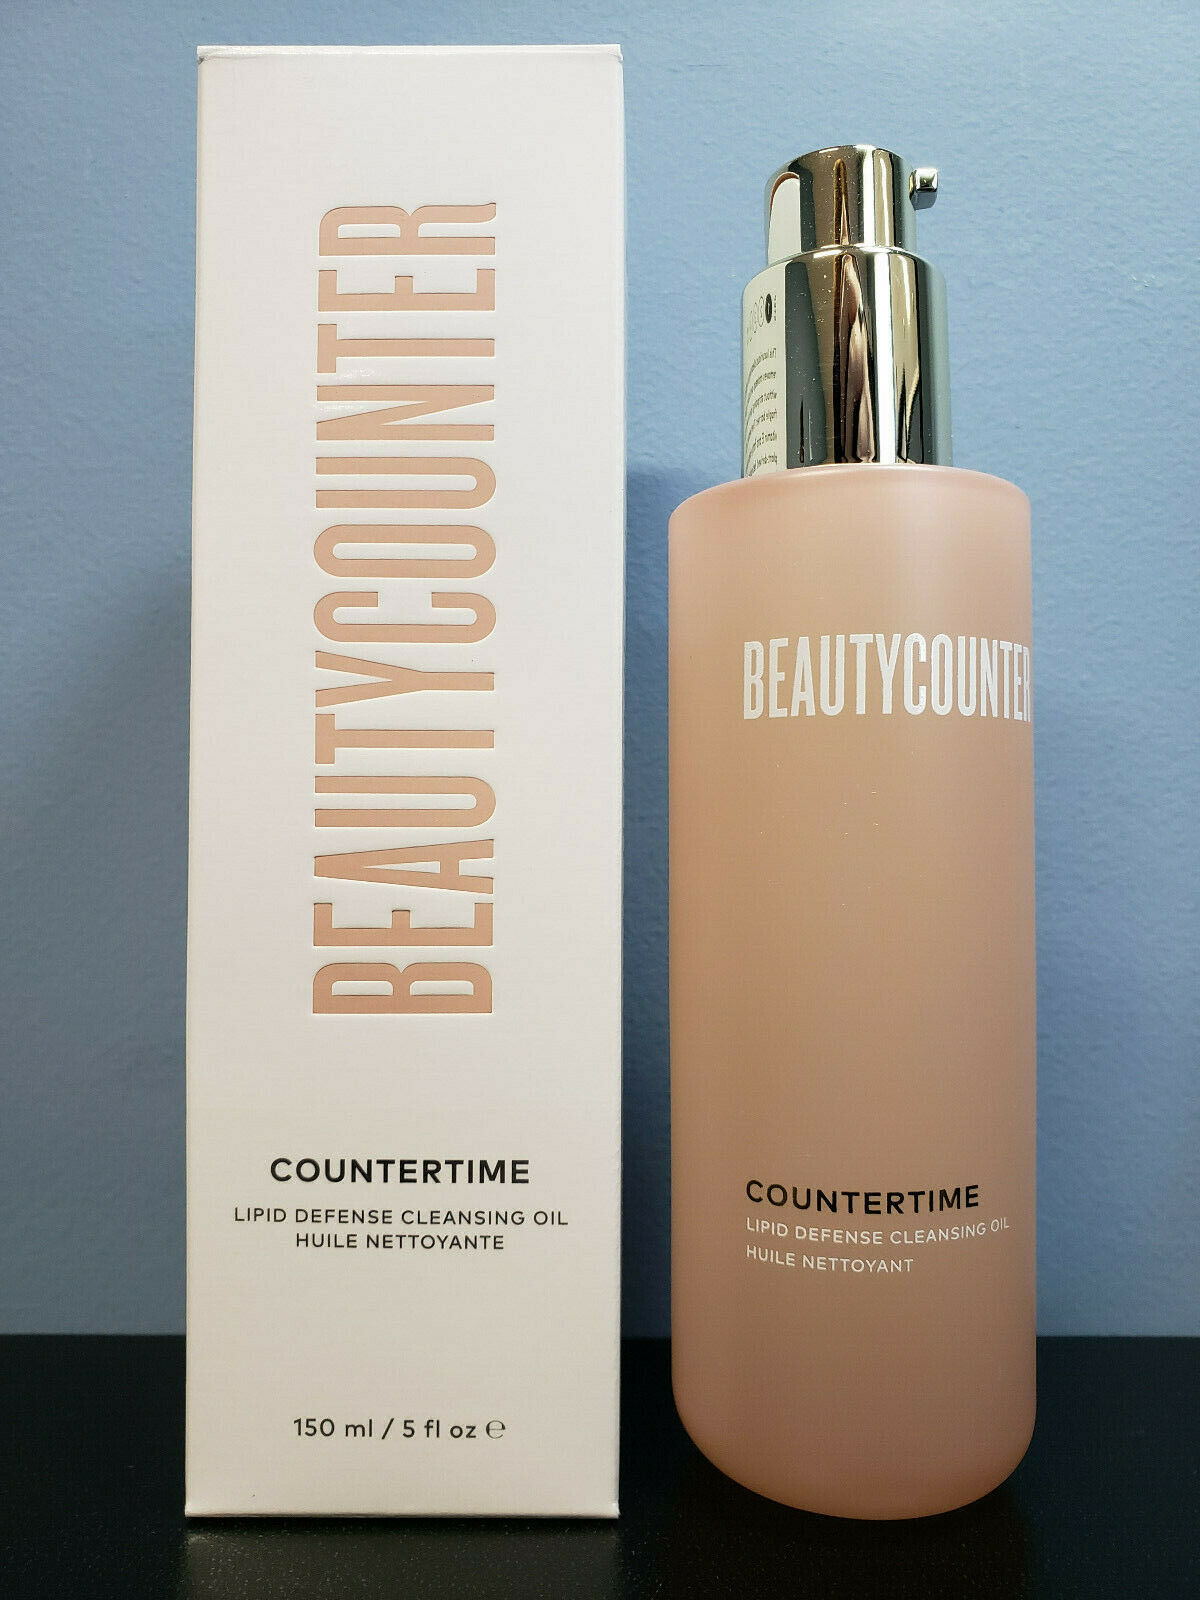 BeautyCounter CounterTime Lipid Defense Cleansing Oil 5 oz - New! Beauty Counter